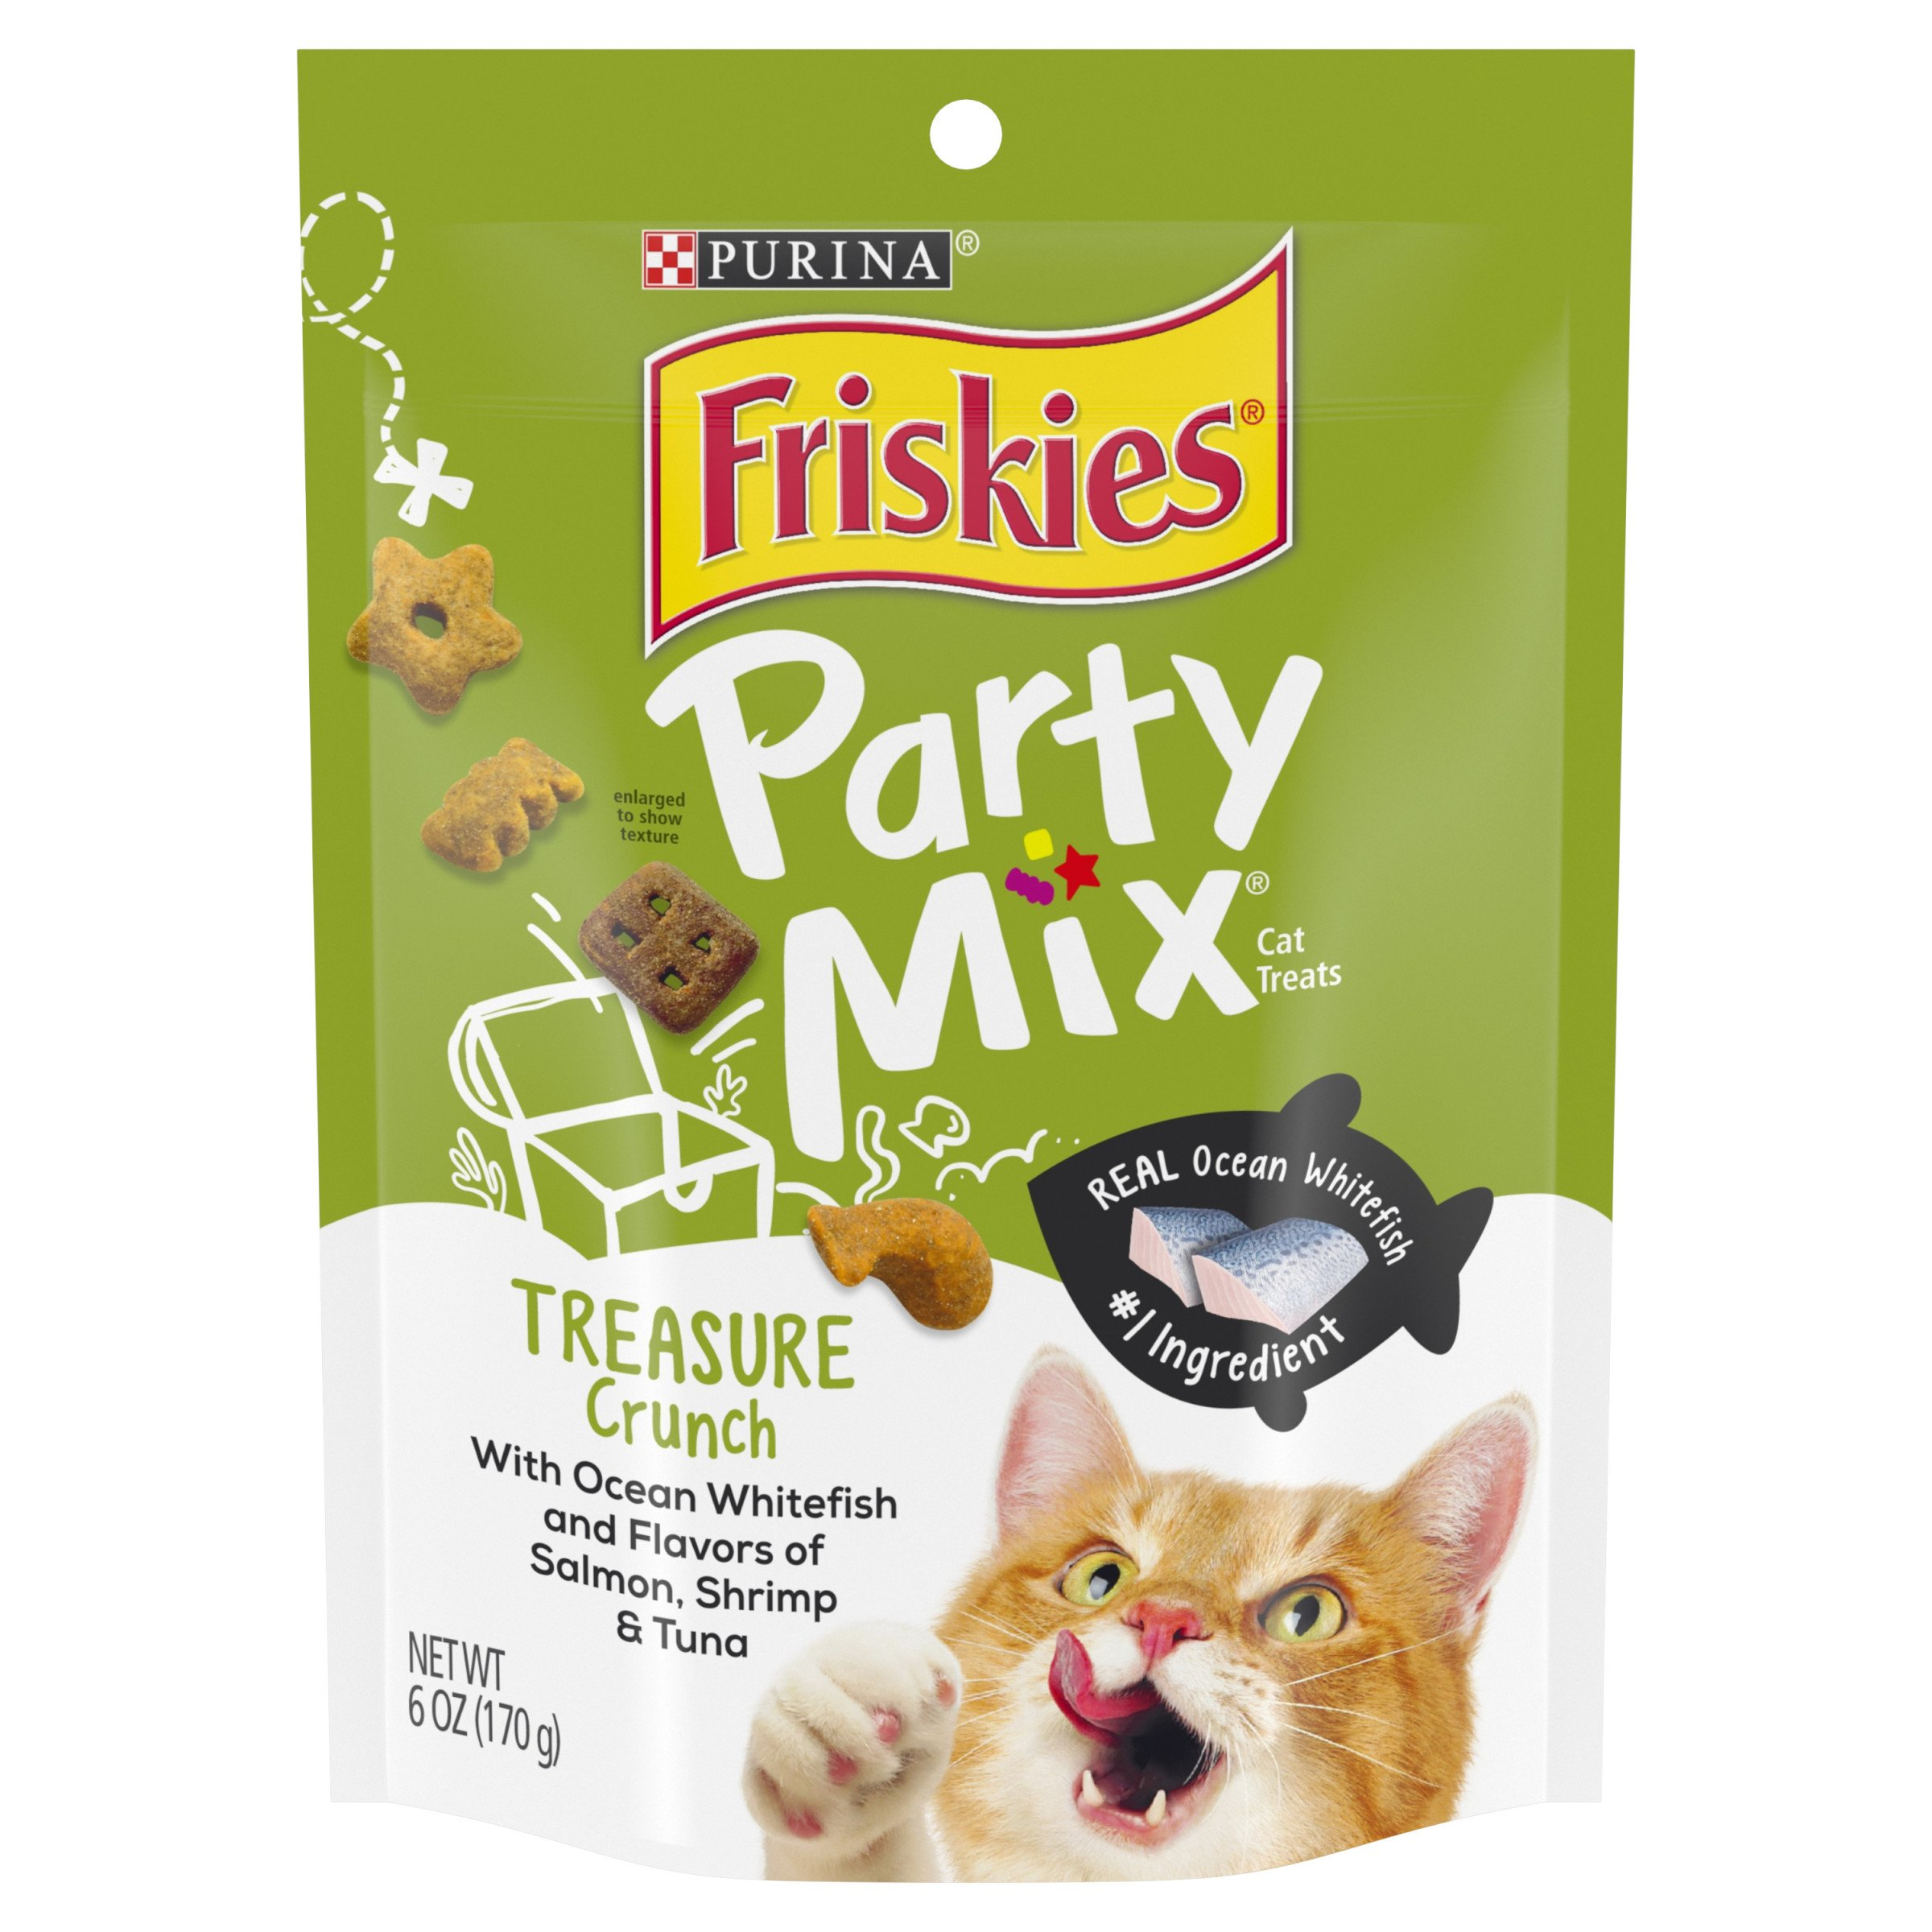 Purina Friskies Party Mix Treasure Crunch Adult Cat Treats - 6 oz. Pouch